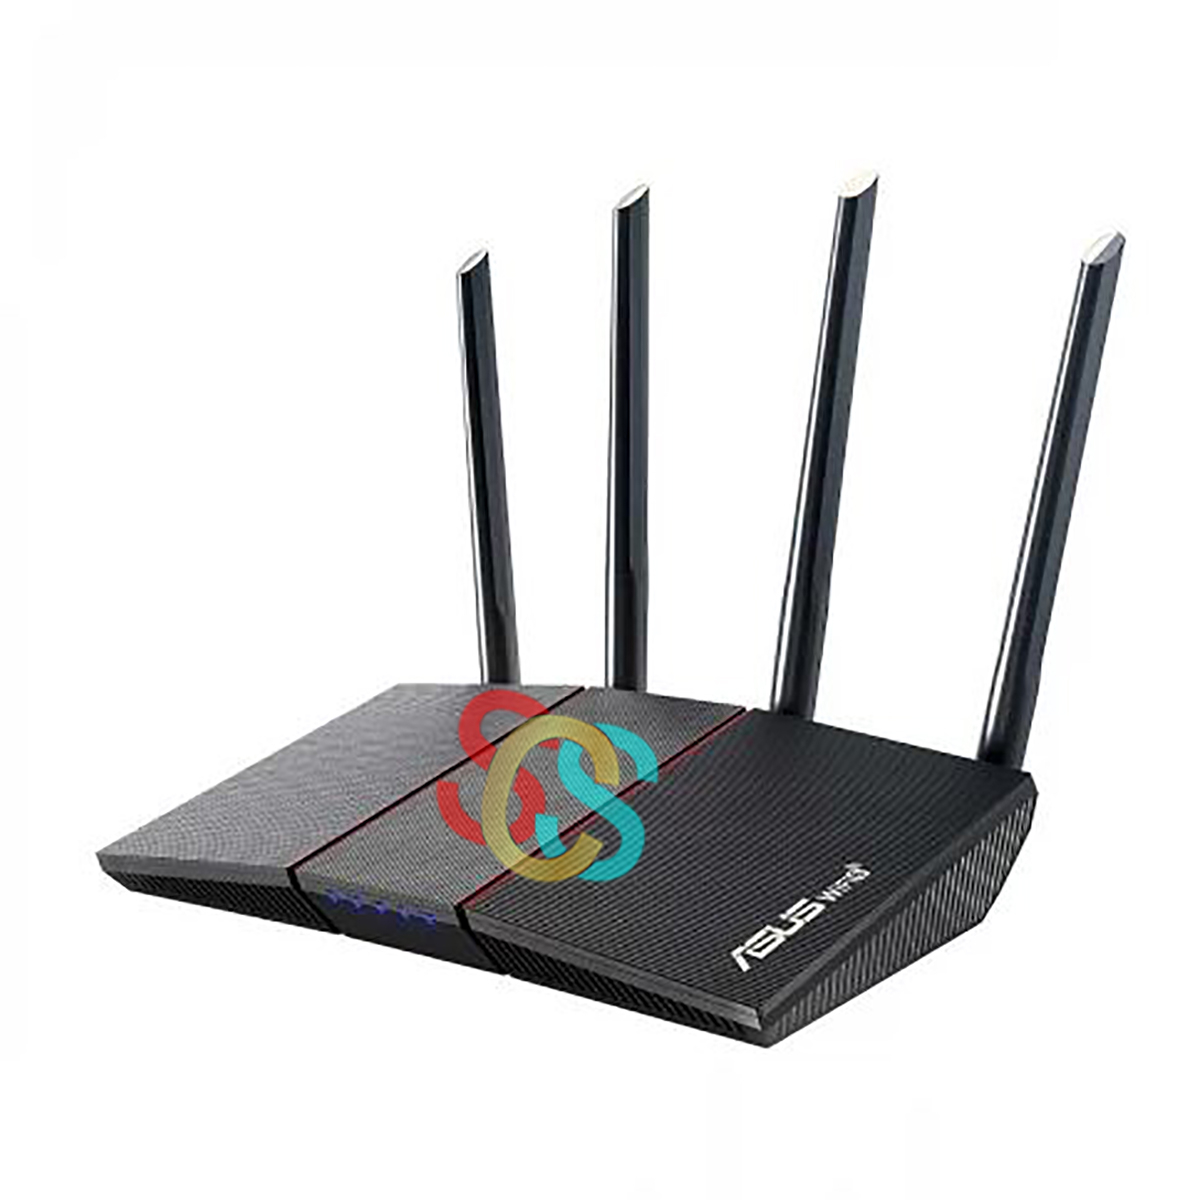 Asus RT-AX55 AX1800 Mbps Gigabit Dual-Band Wi-Fi 6 Router